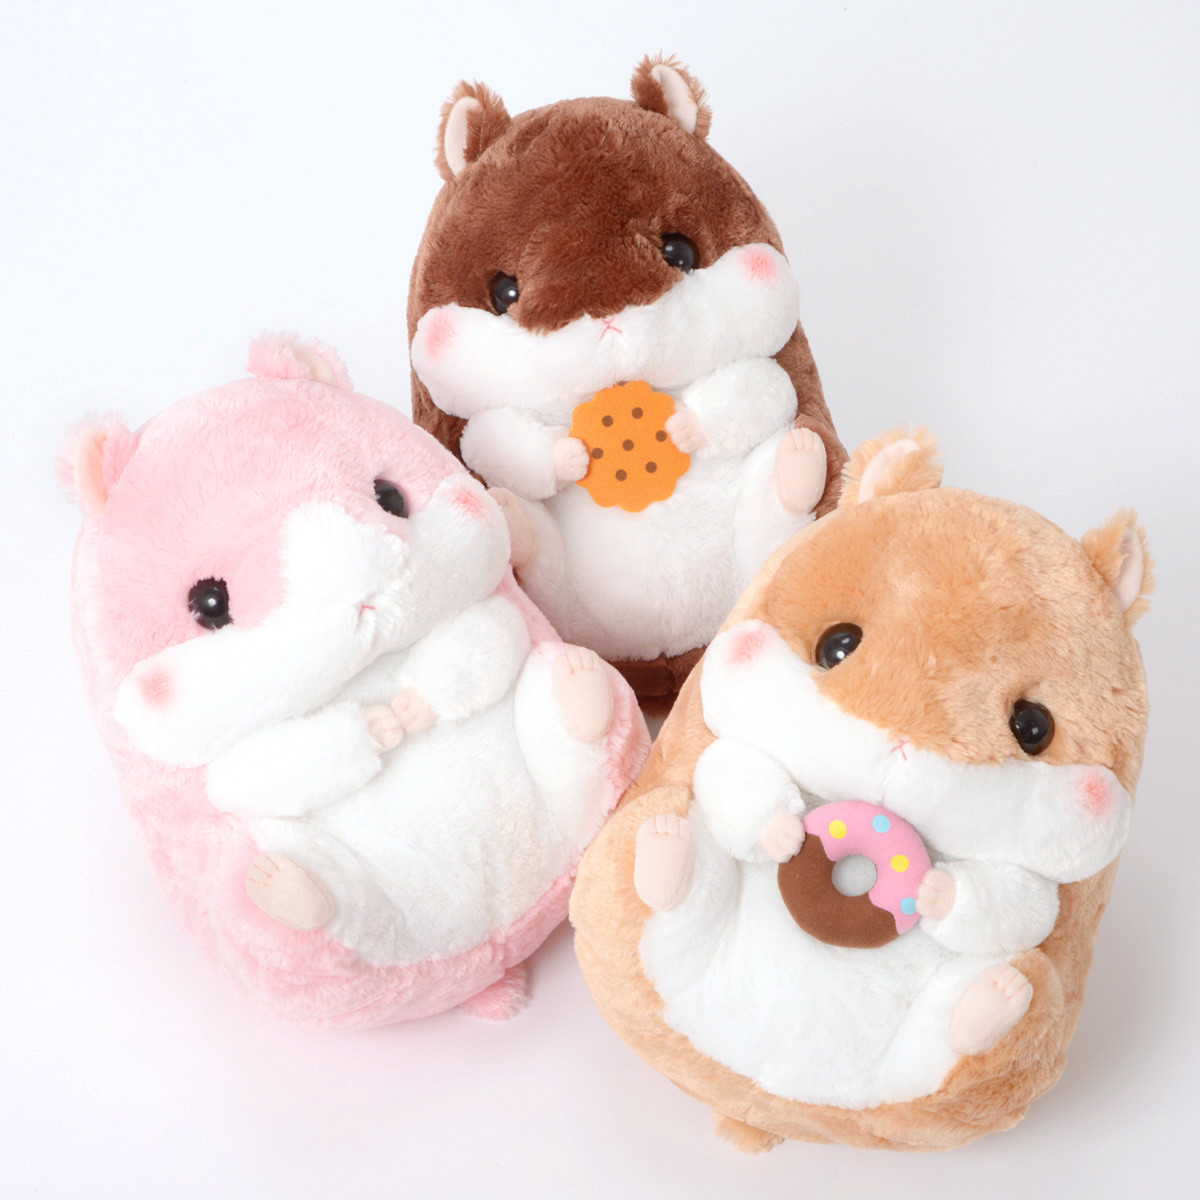 Coroham Coron Cafe Coron Hamster Plush Collection Big